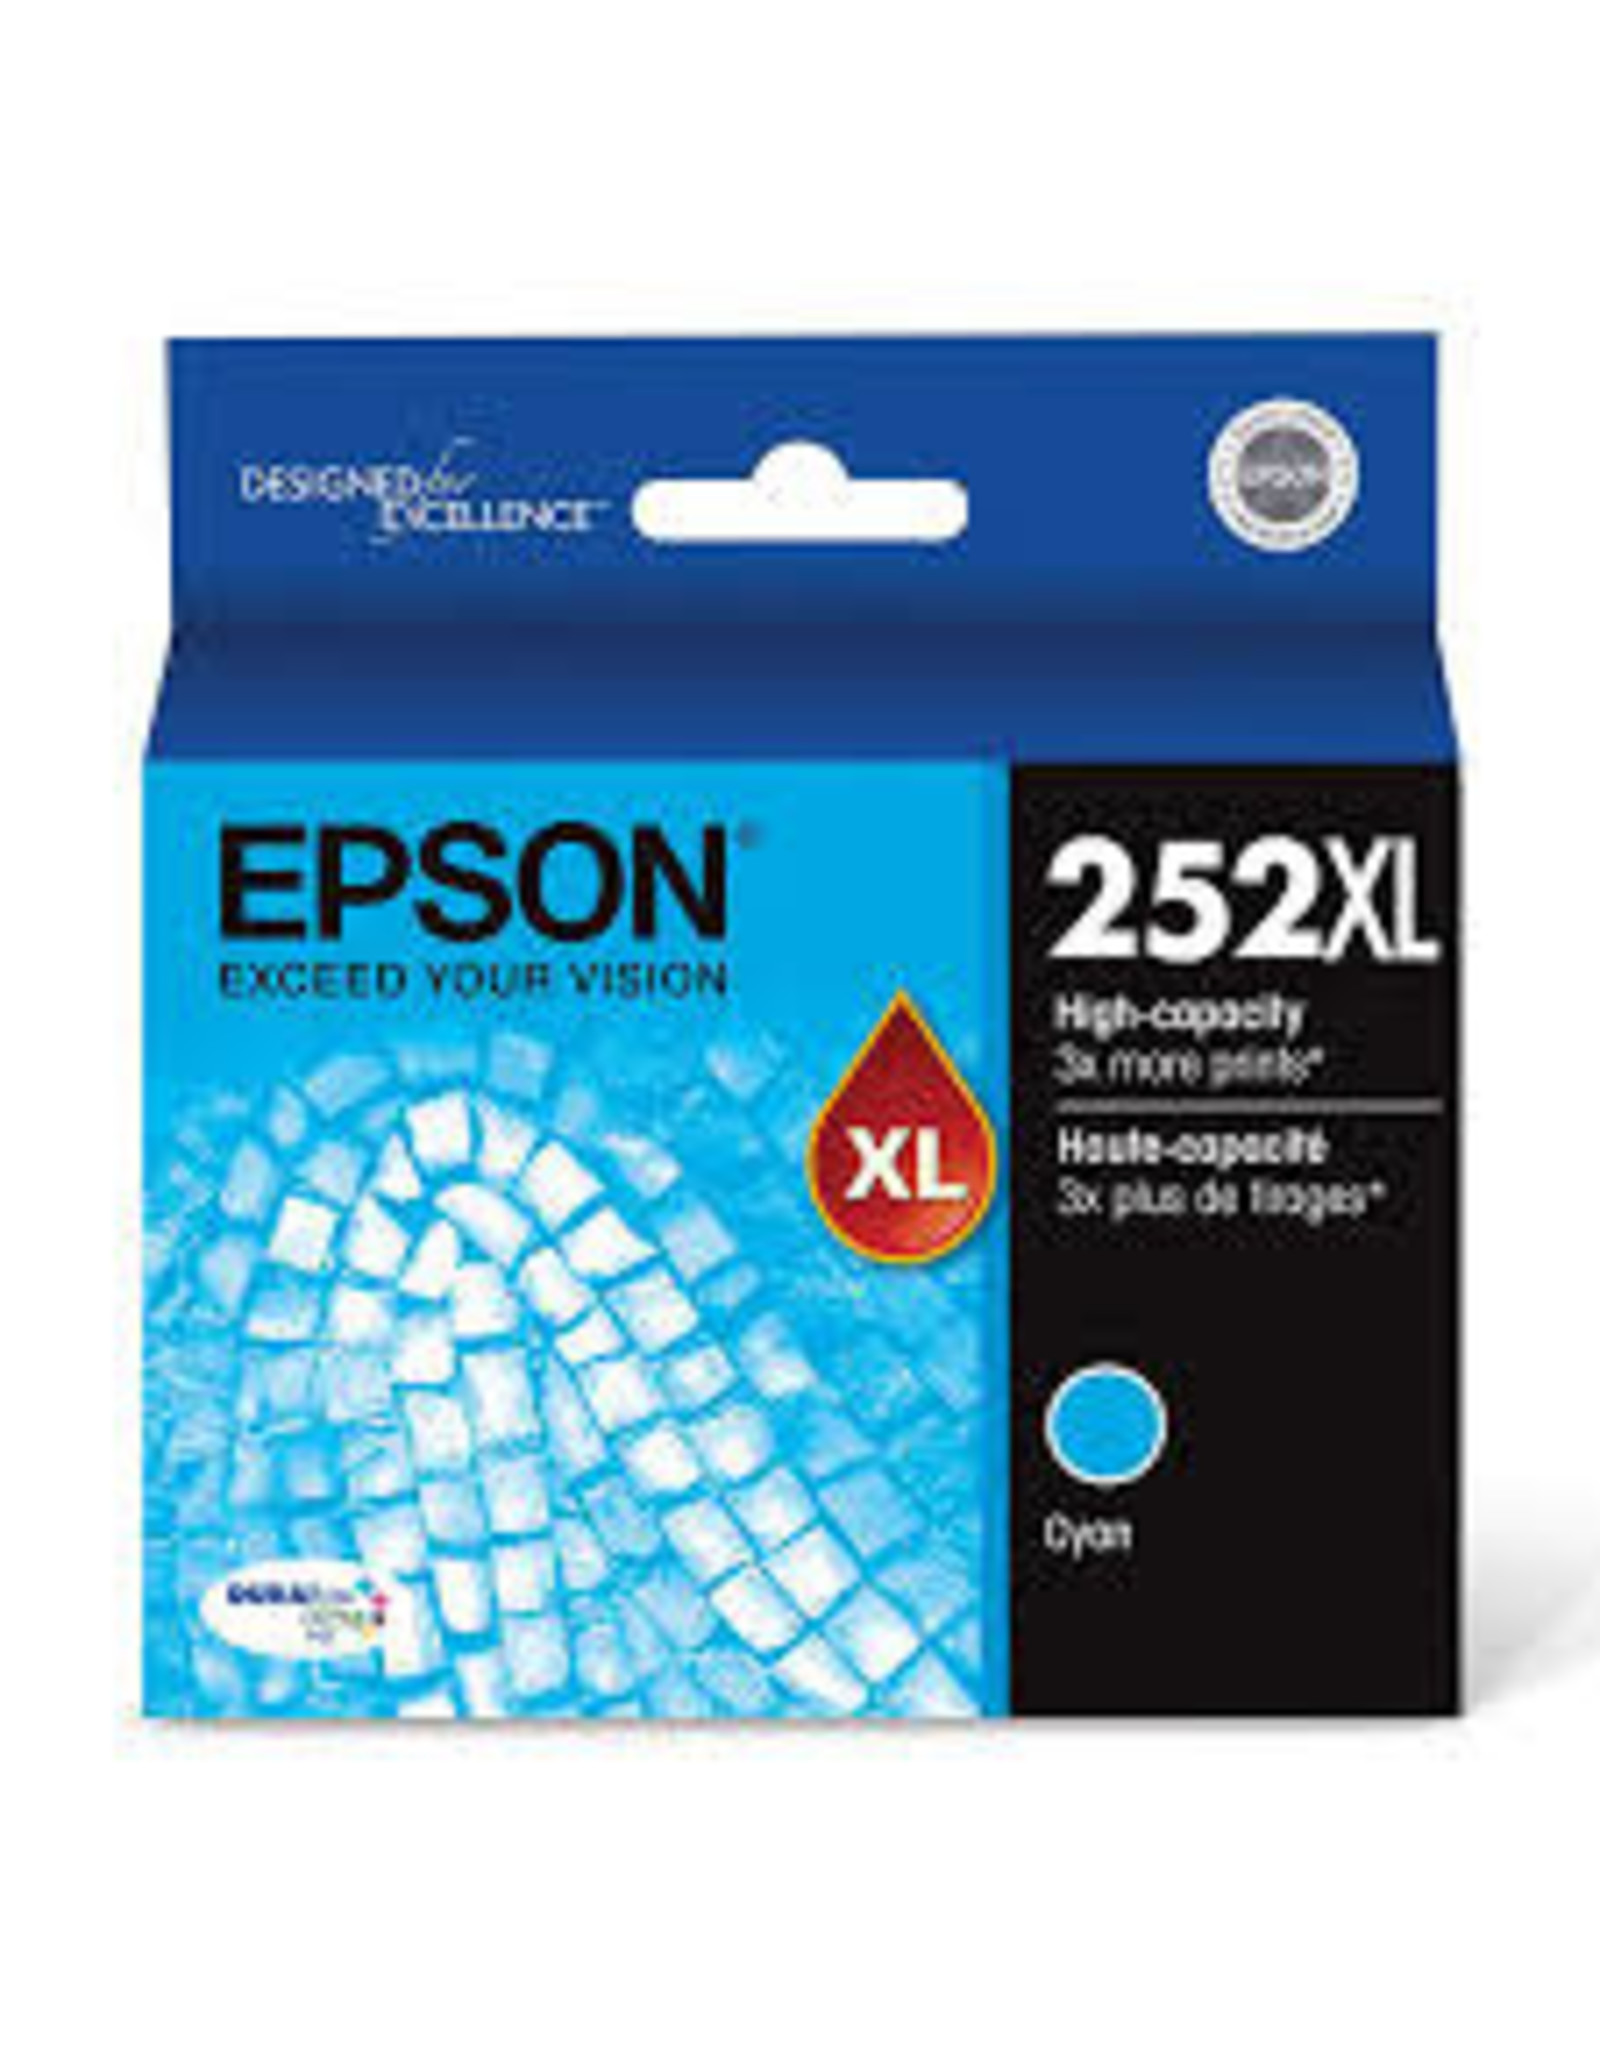 CARTRIDGE, EPSON 252XL CYAN.